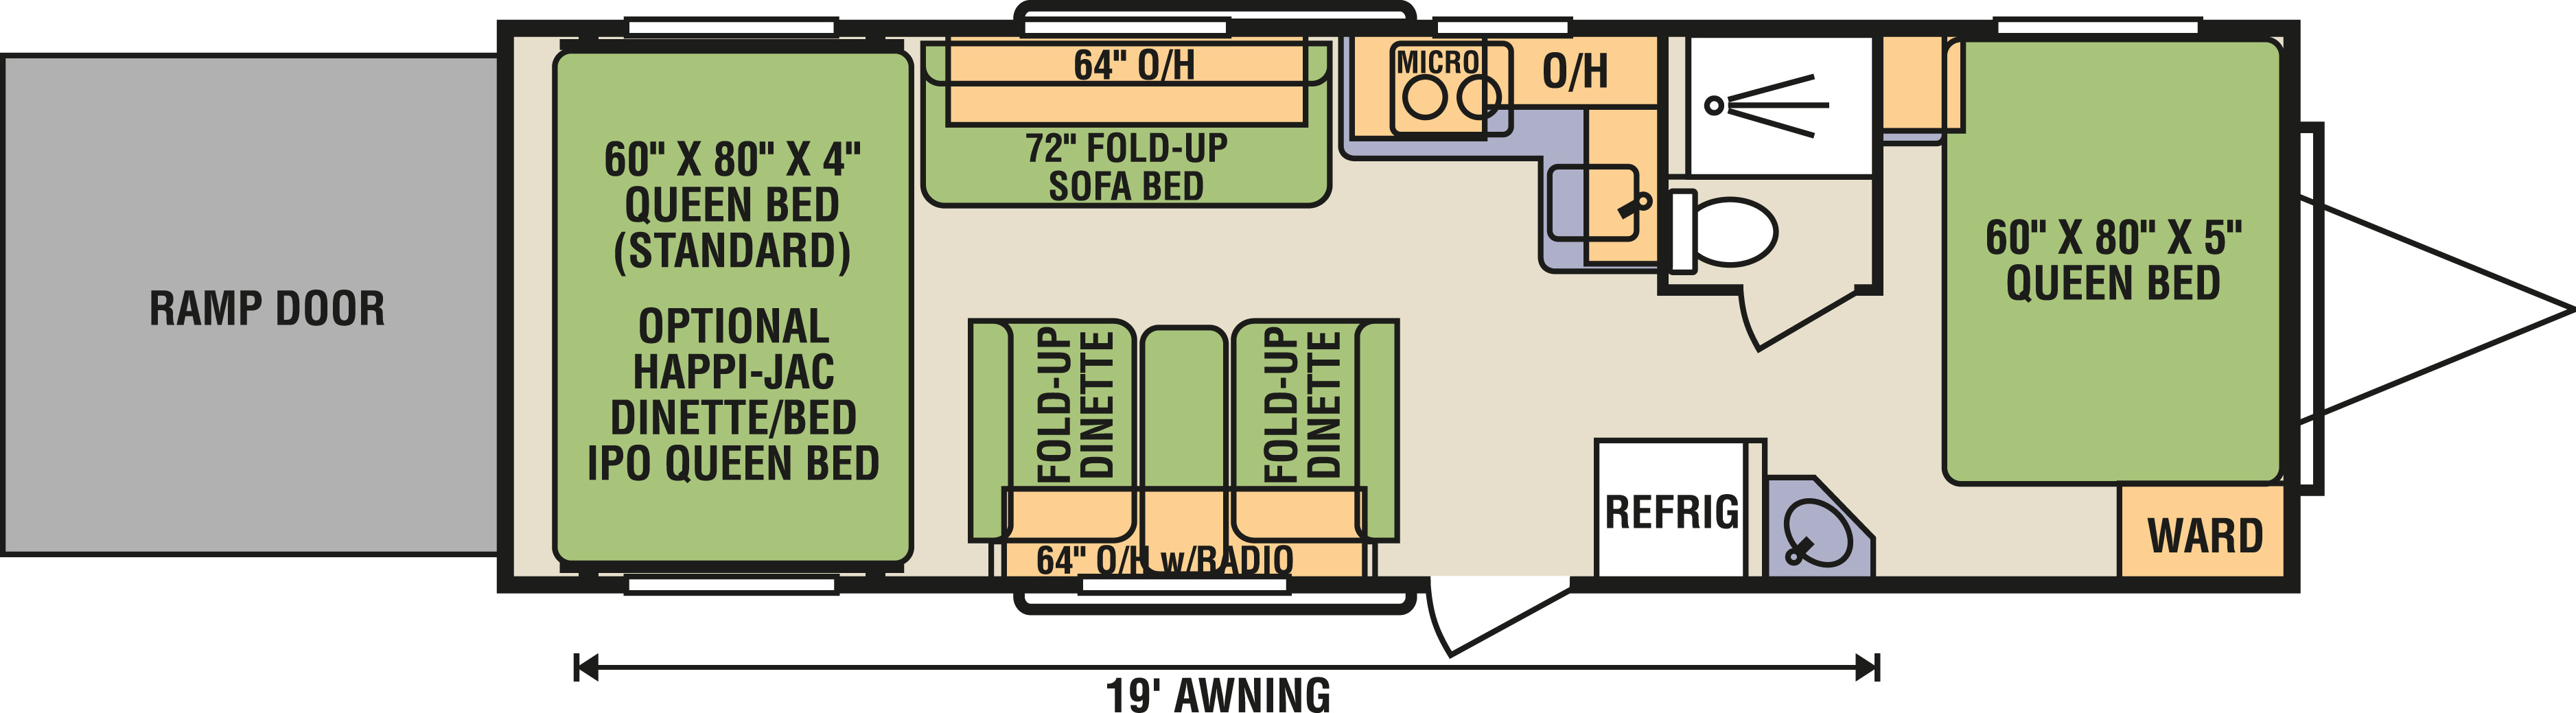 8.5x26FBR - Floorplan